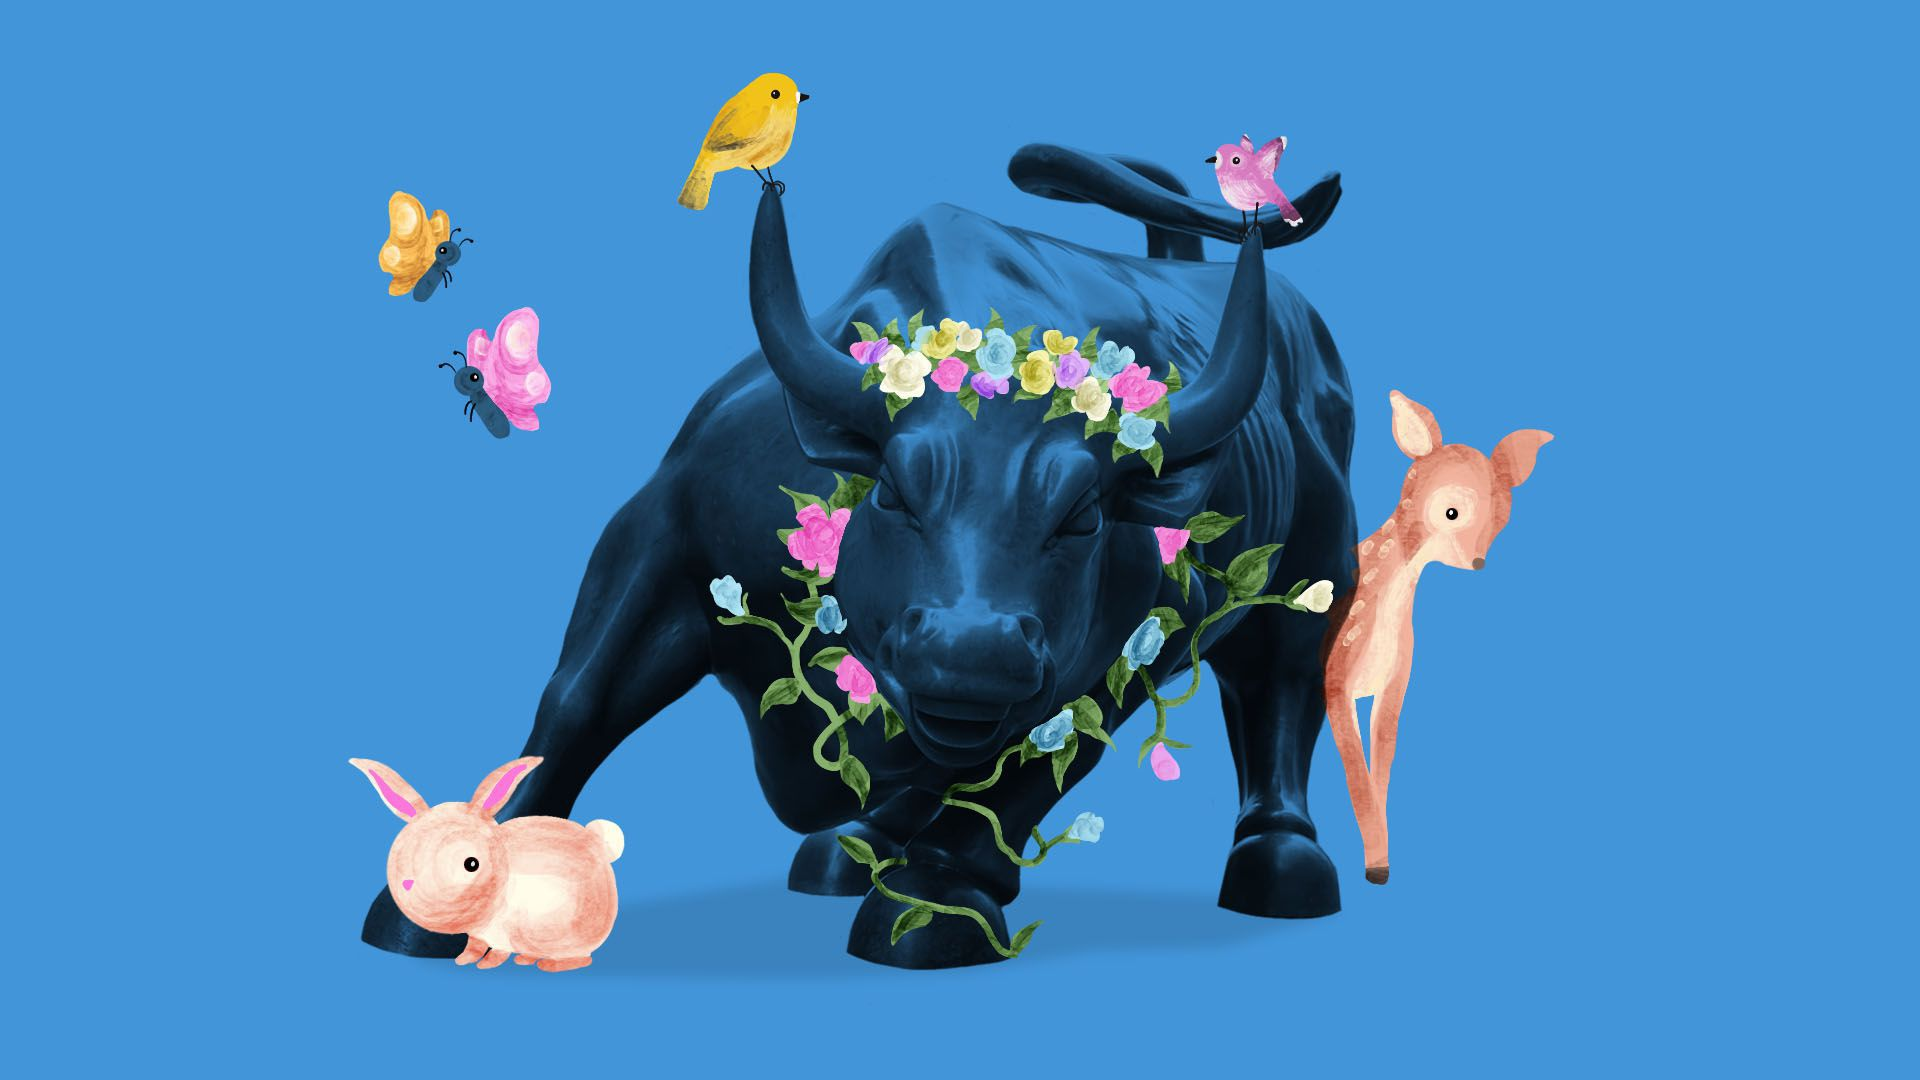 The New York Stock exchange bull with flowers and bunnies and deer around it